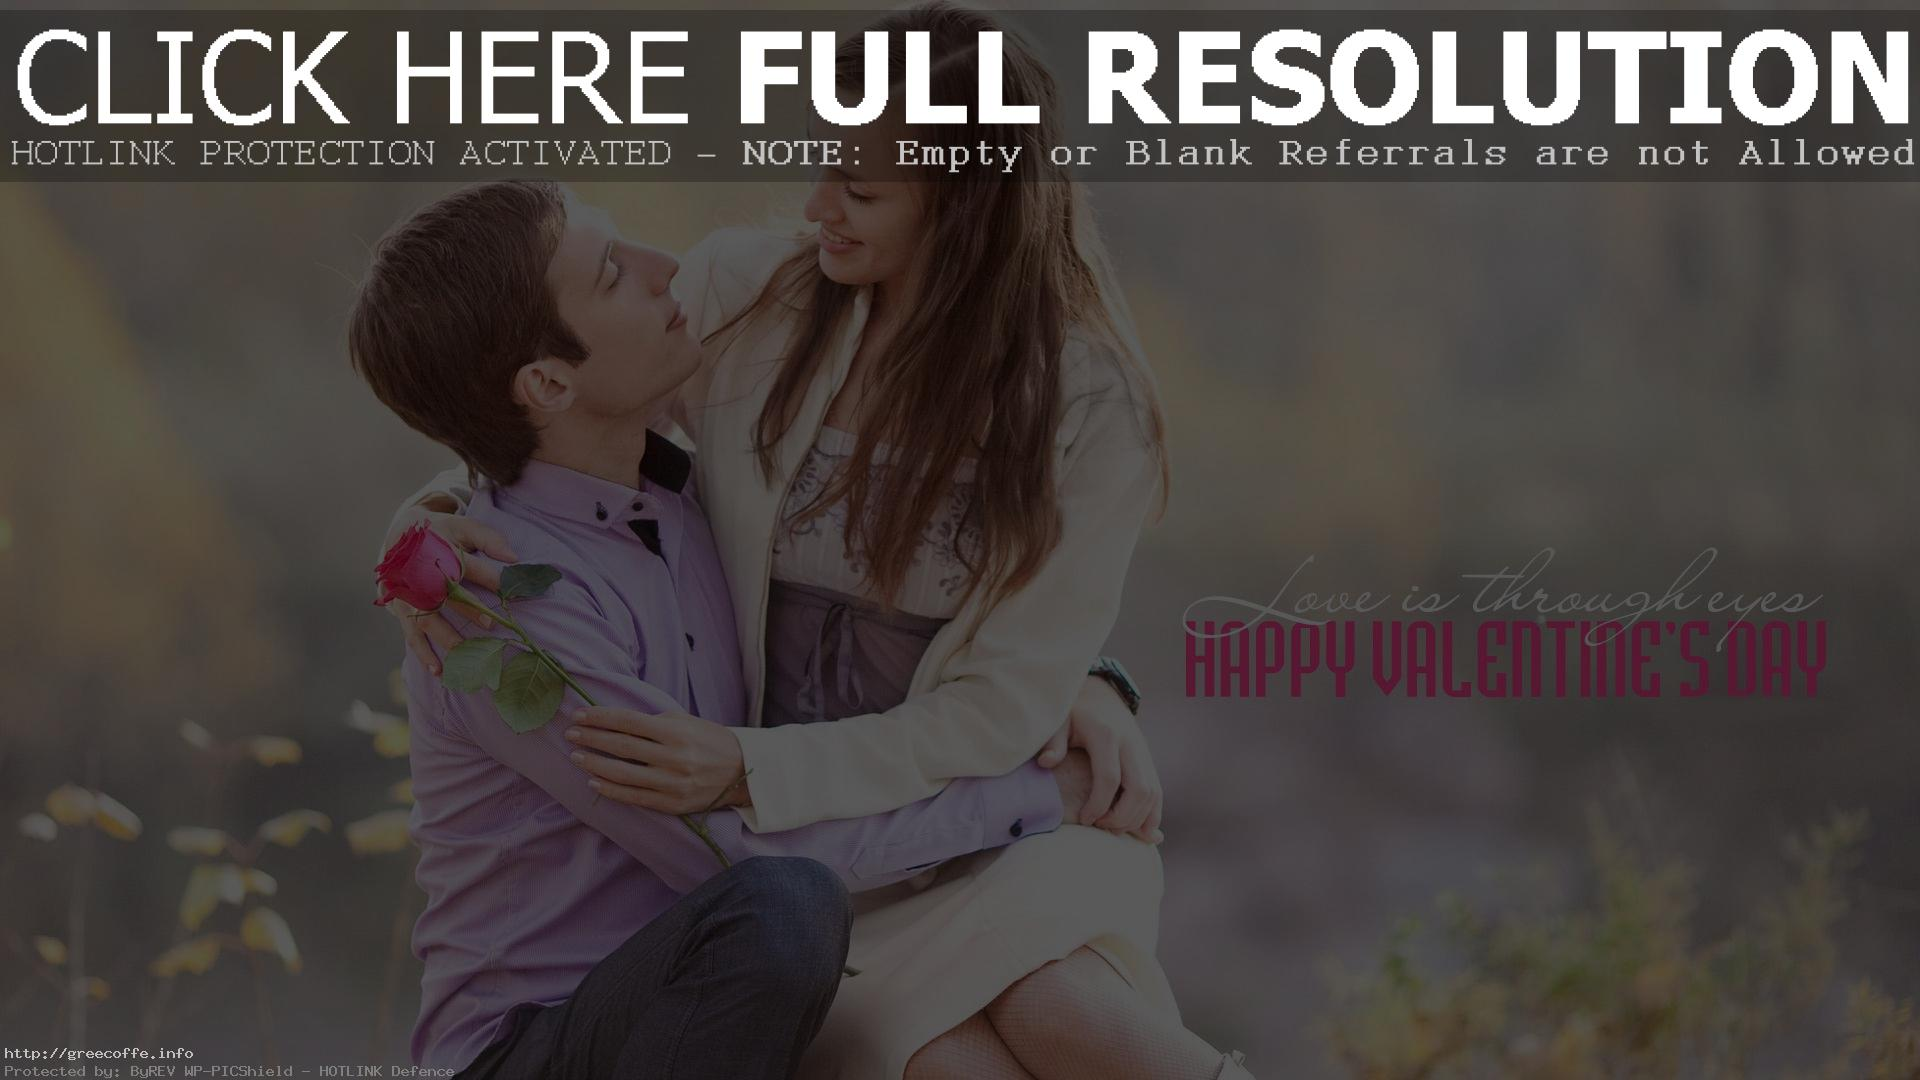 Cute Love Couple Wallpapers For Mobile